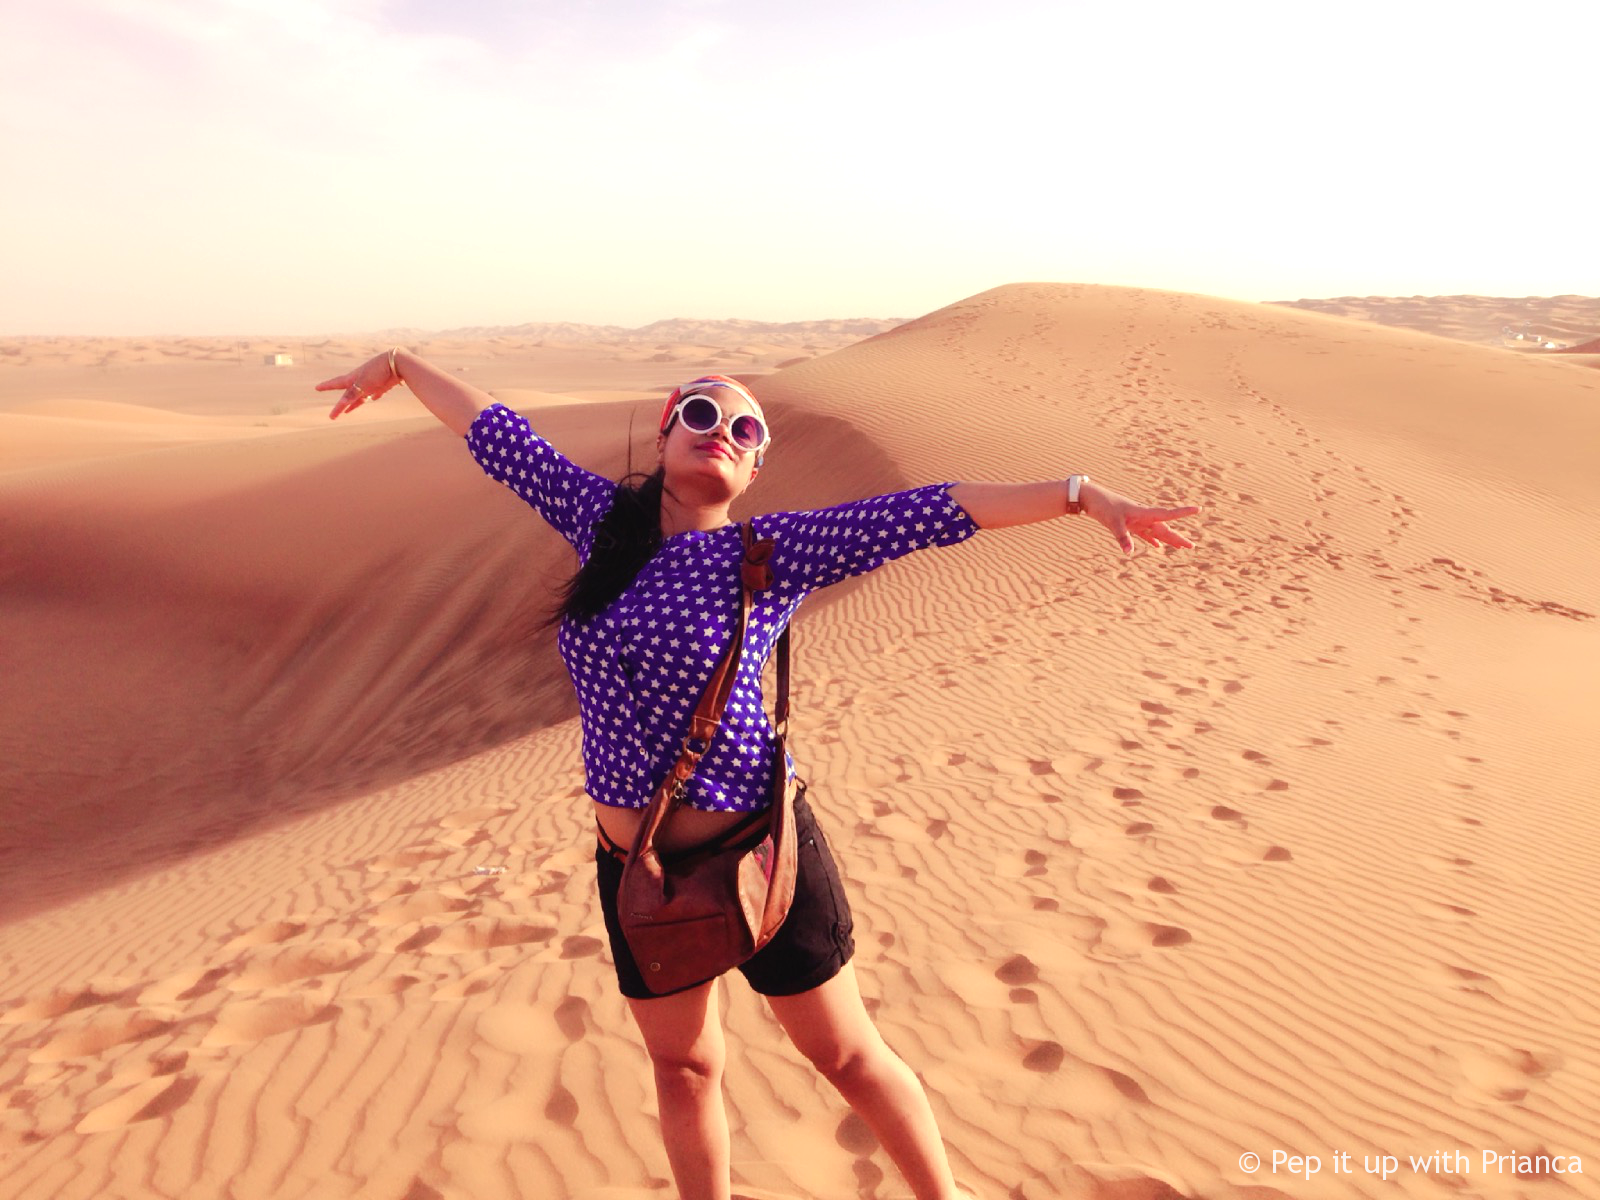 Absorbing the desert - Travel to the Desert to 'Desert' Yourself & Find your Soul - Magnificent Dubai Desert